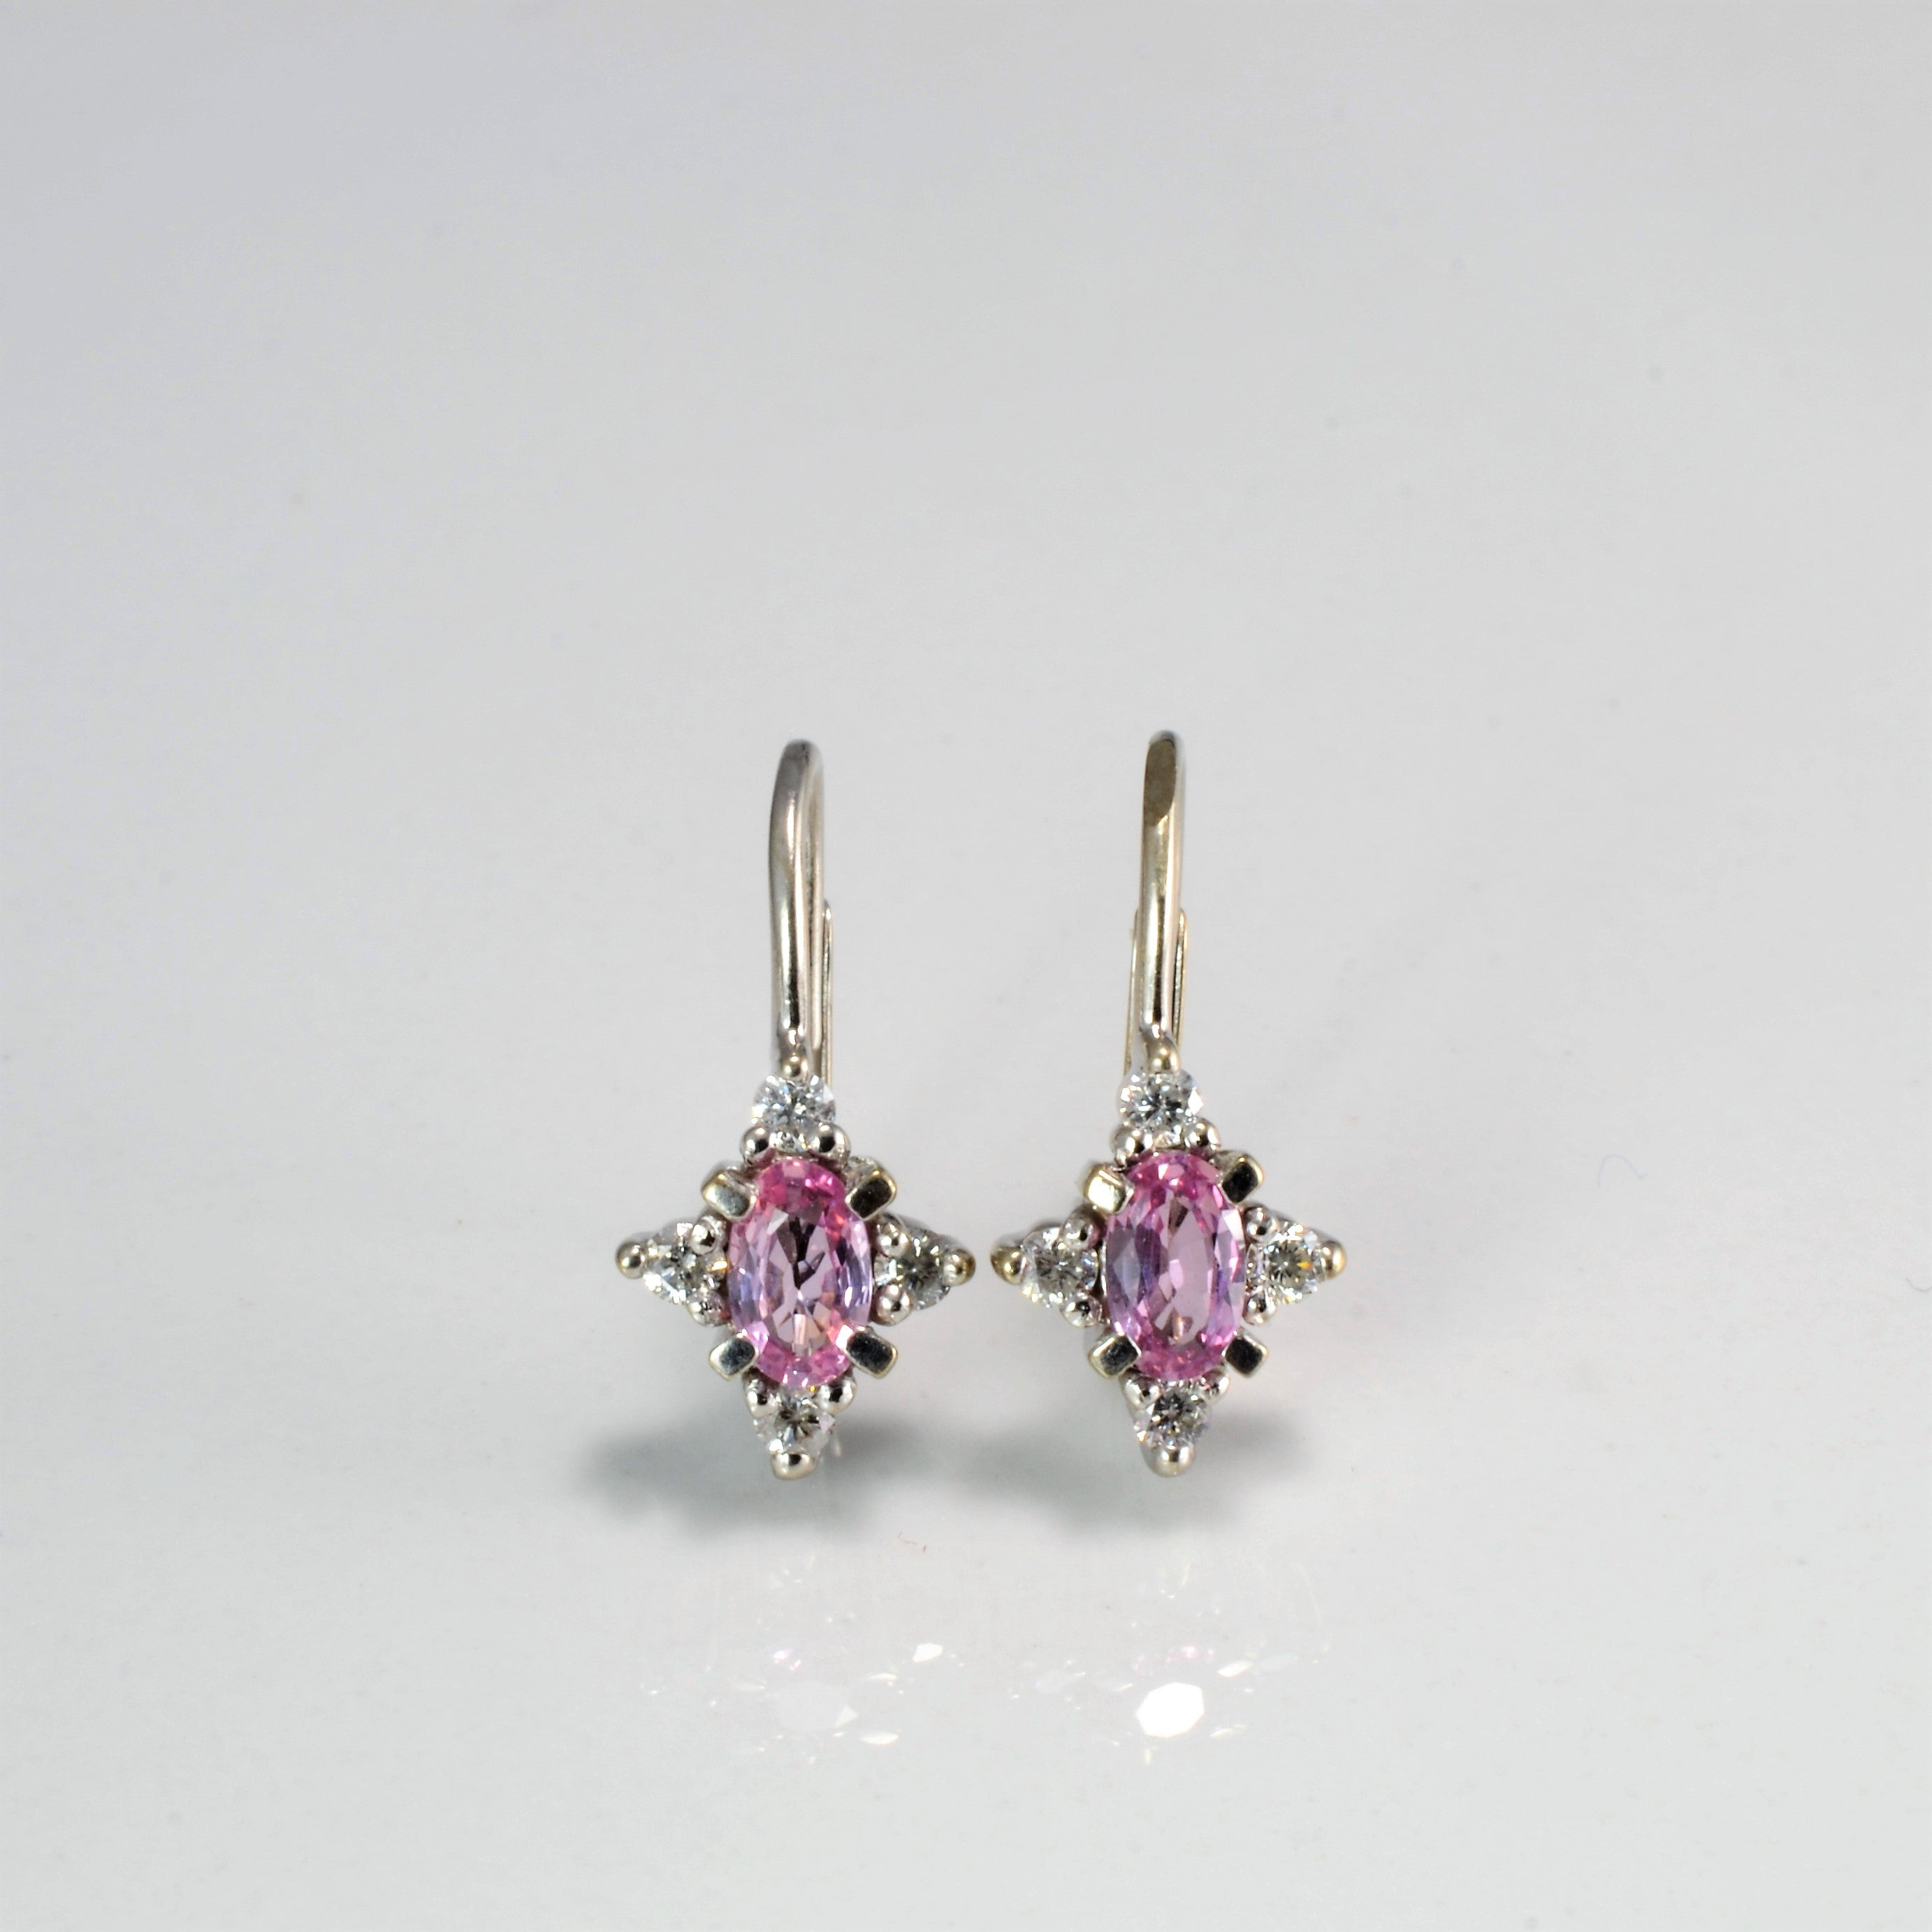 Cluster Diamond & Pink Sapphire Earrings | 0.18 ctw |